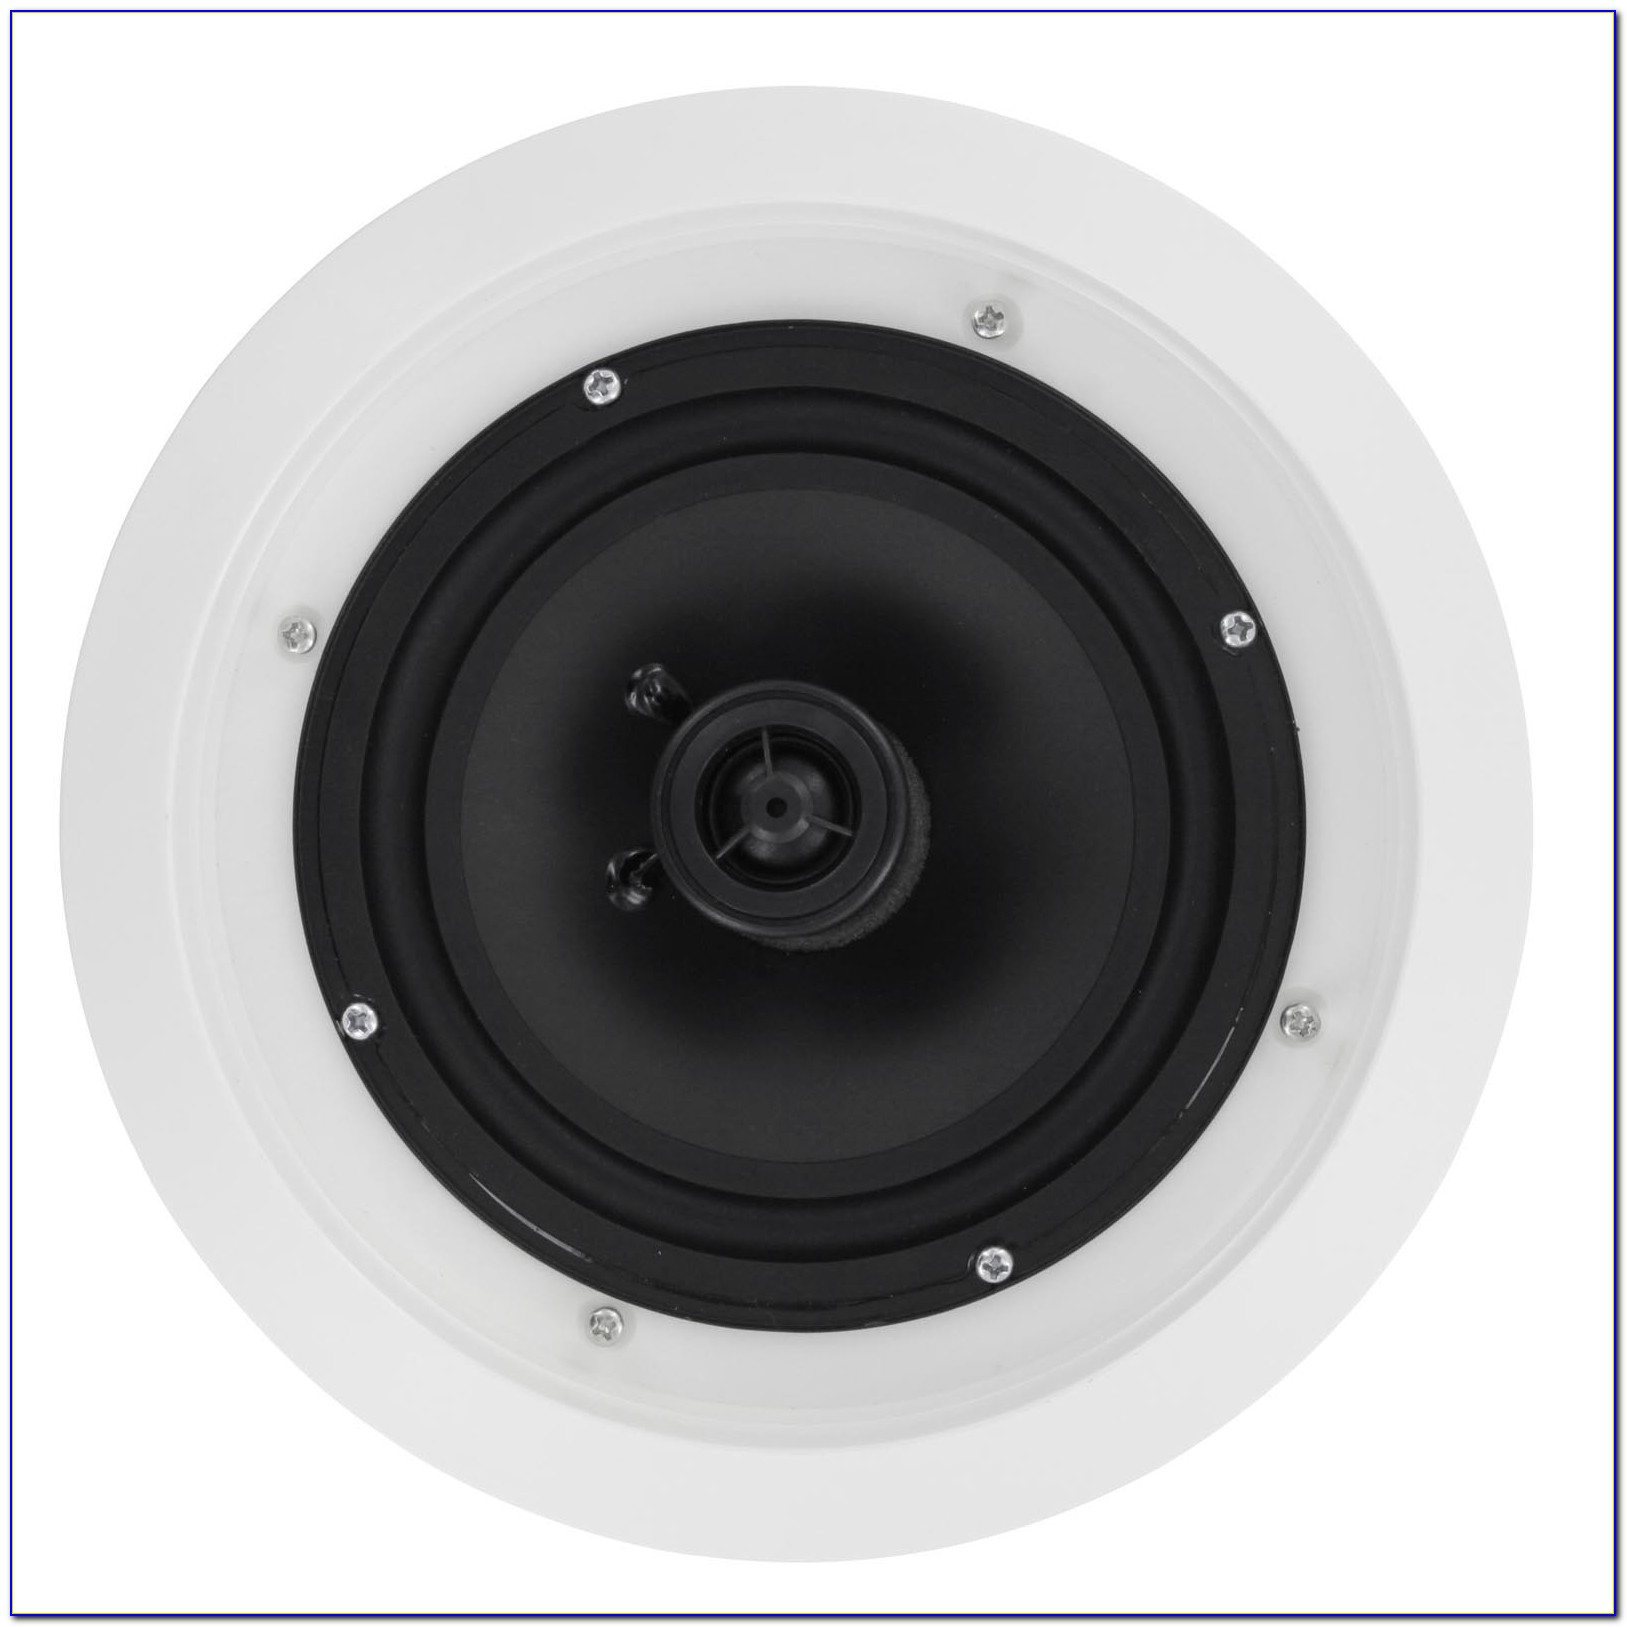 2 Way Or 3 Way Ceiling Speakers